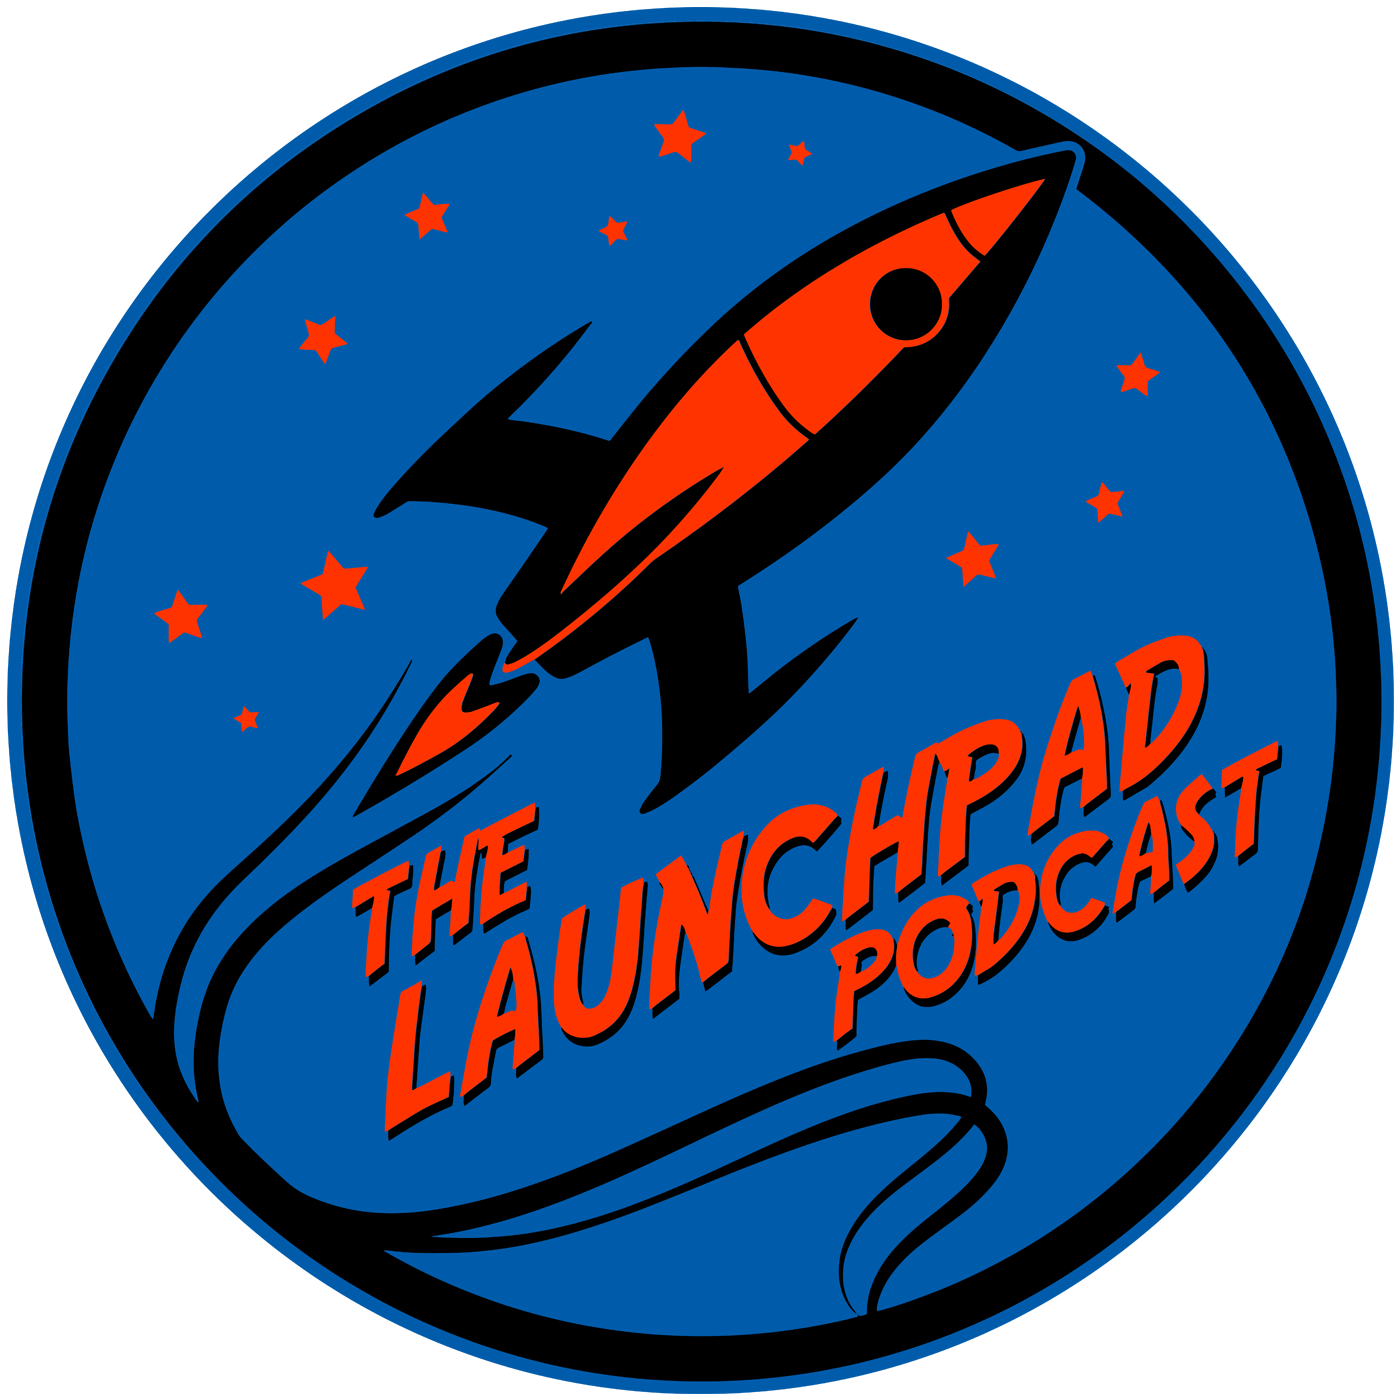 launchpad.png